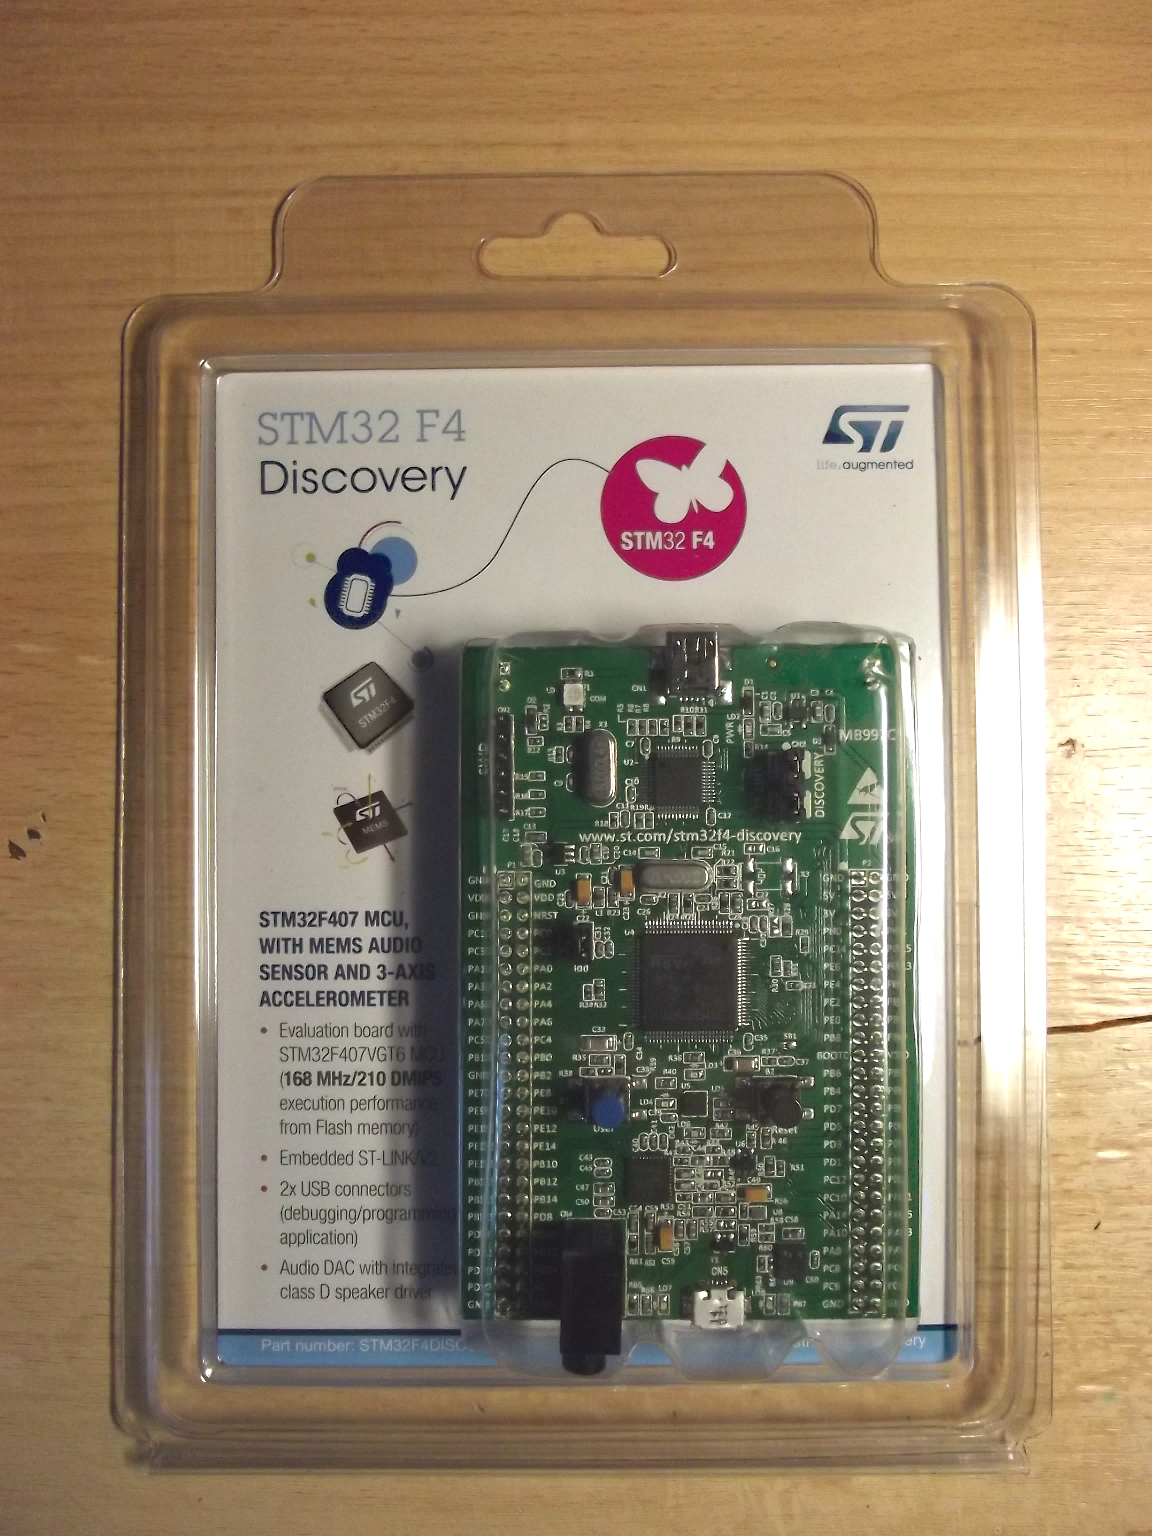 Installing Neccessary Tools for Stm32f4discovery - Blog on embedded